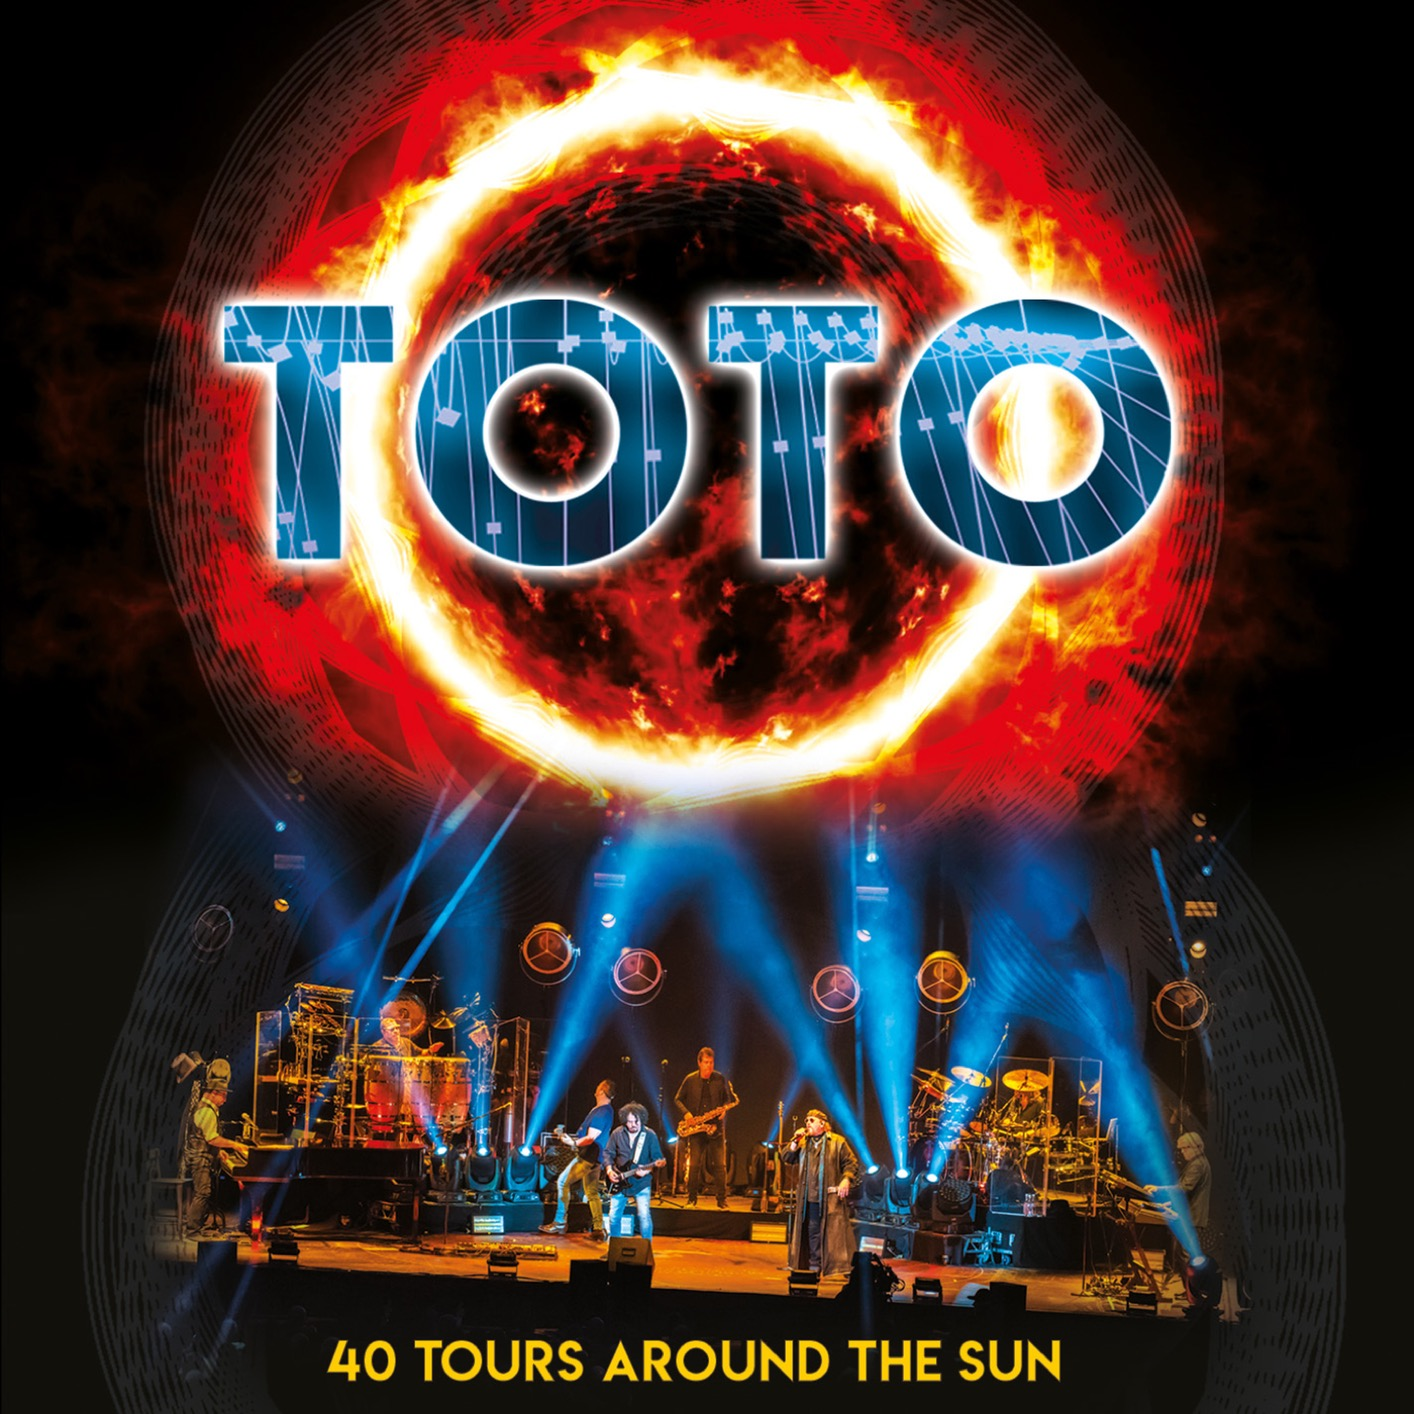 p 20 Things You Never Knew About Toto